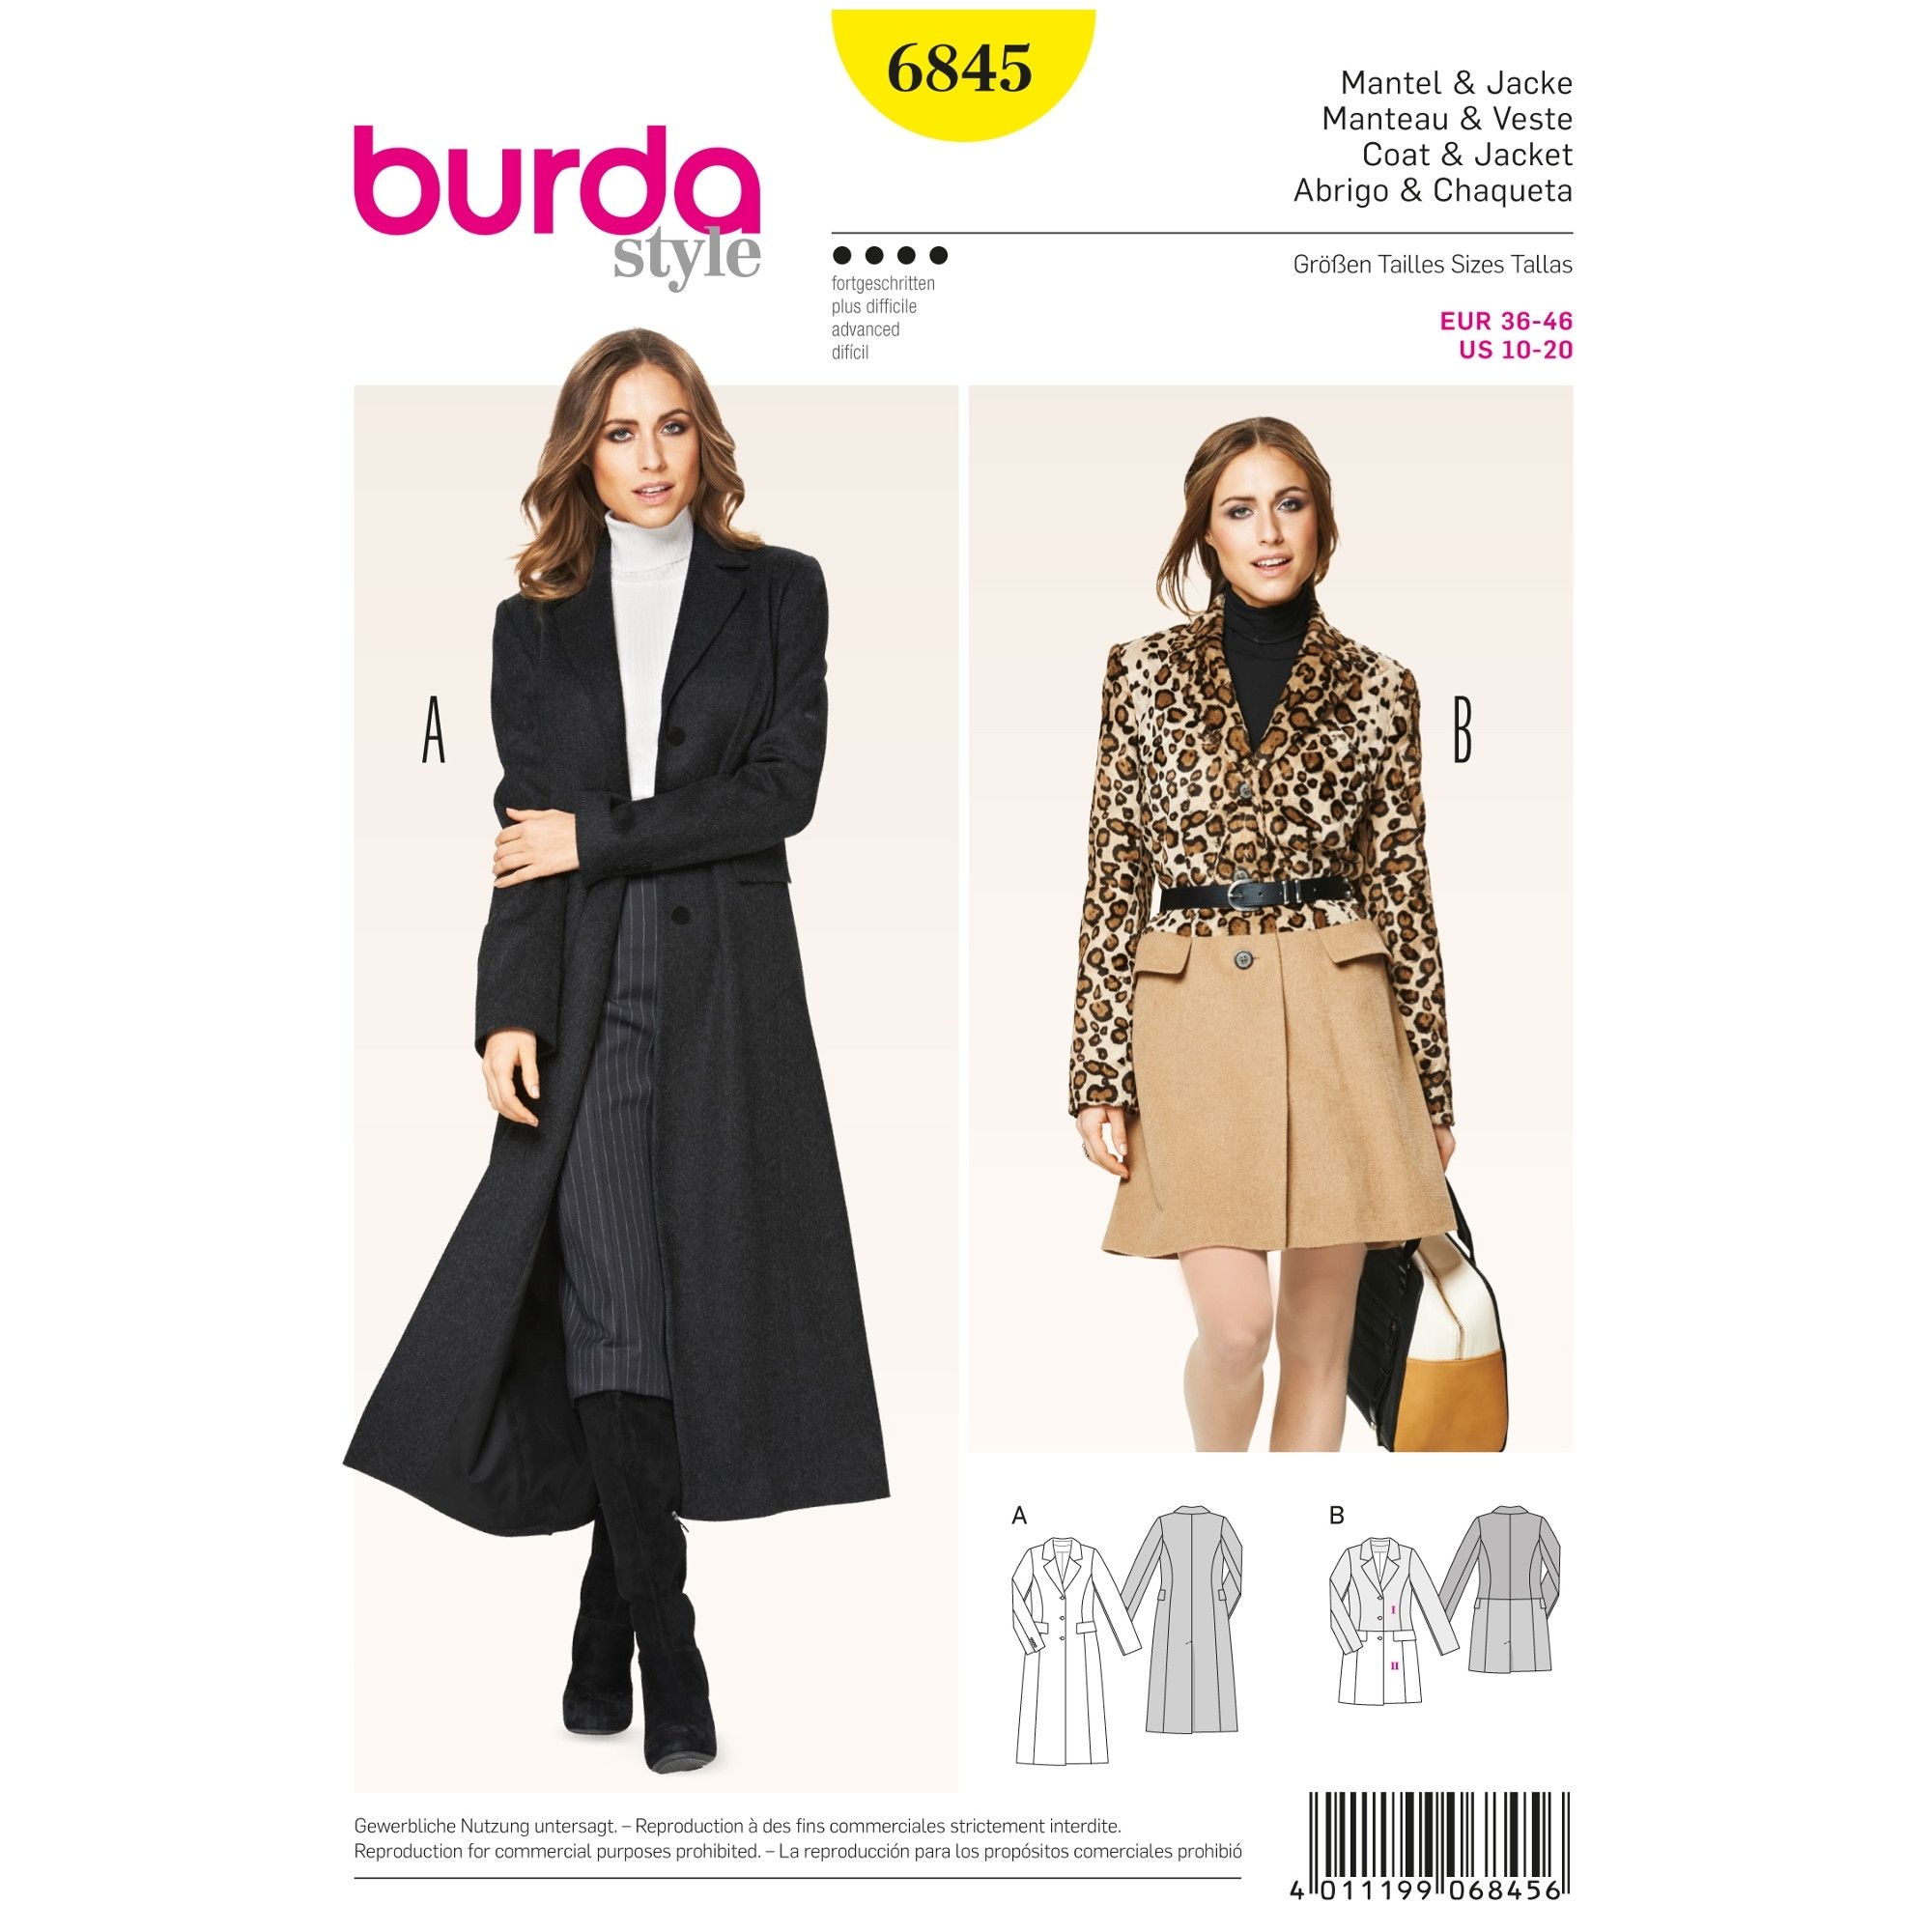 Sewing pattern Manteau, Veste, Burda 6845